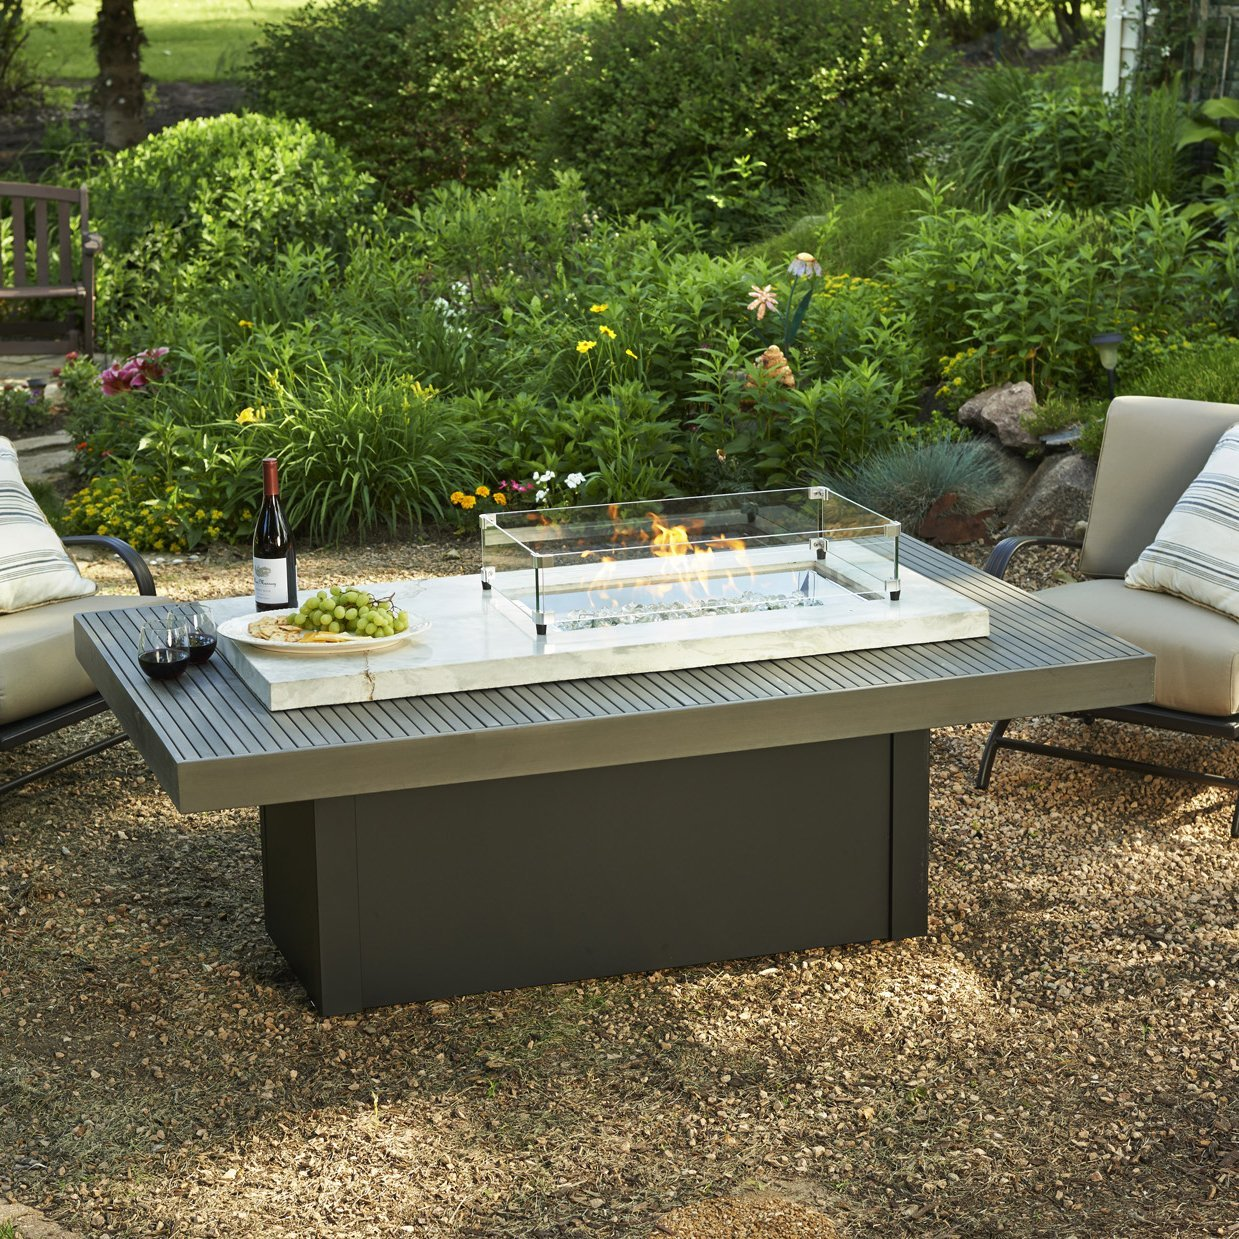 Outdoor Great Room Crystal Fire Coffee Table Onyx Top, White